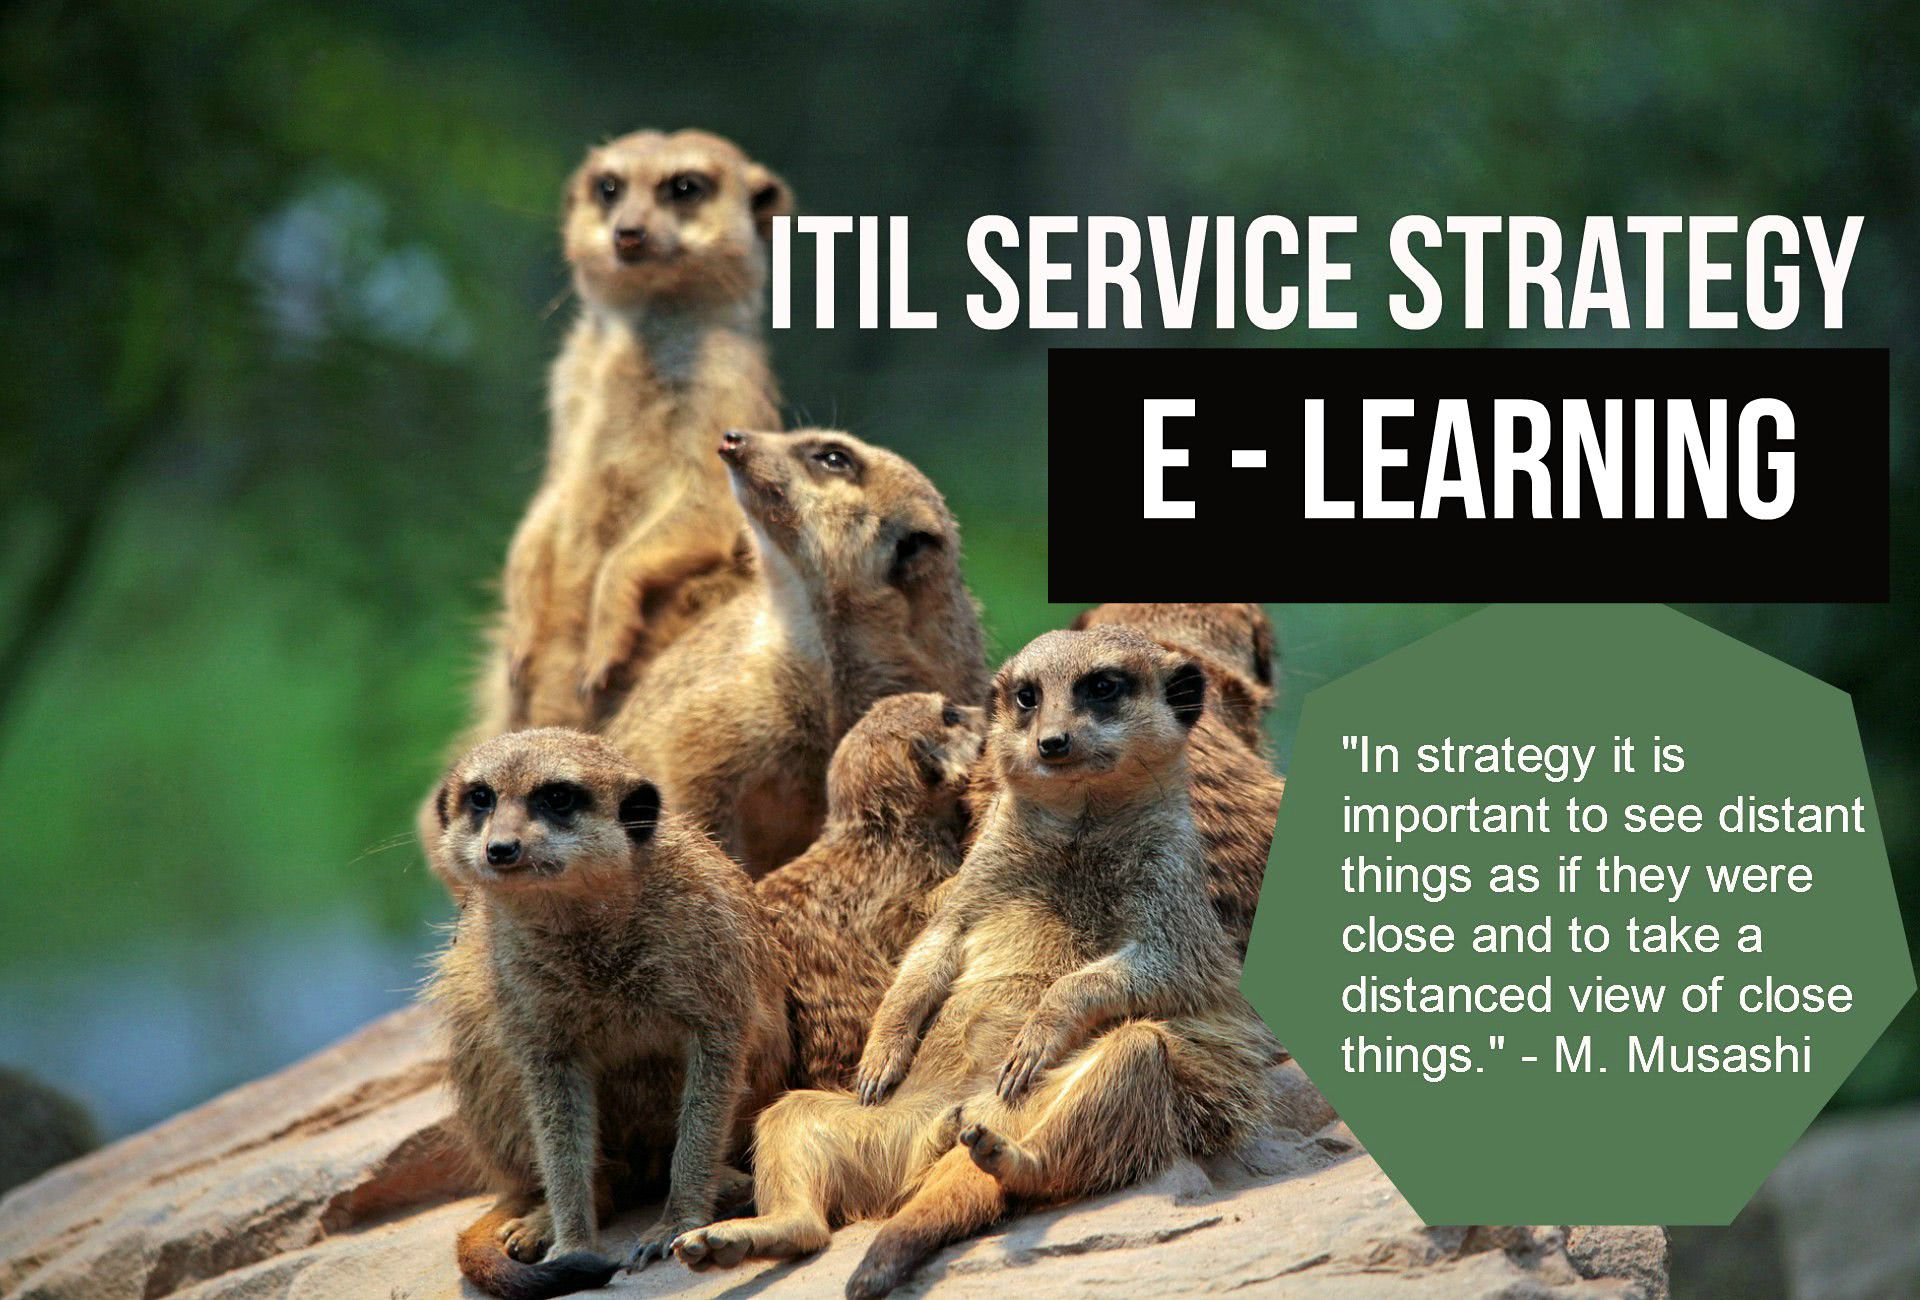 ITS Partner - Edukacija - ITIL Service Strategy education and certification